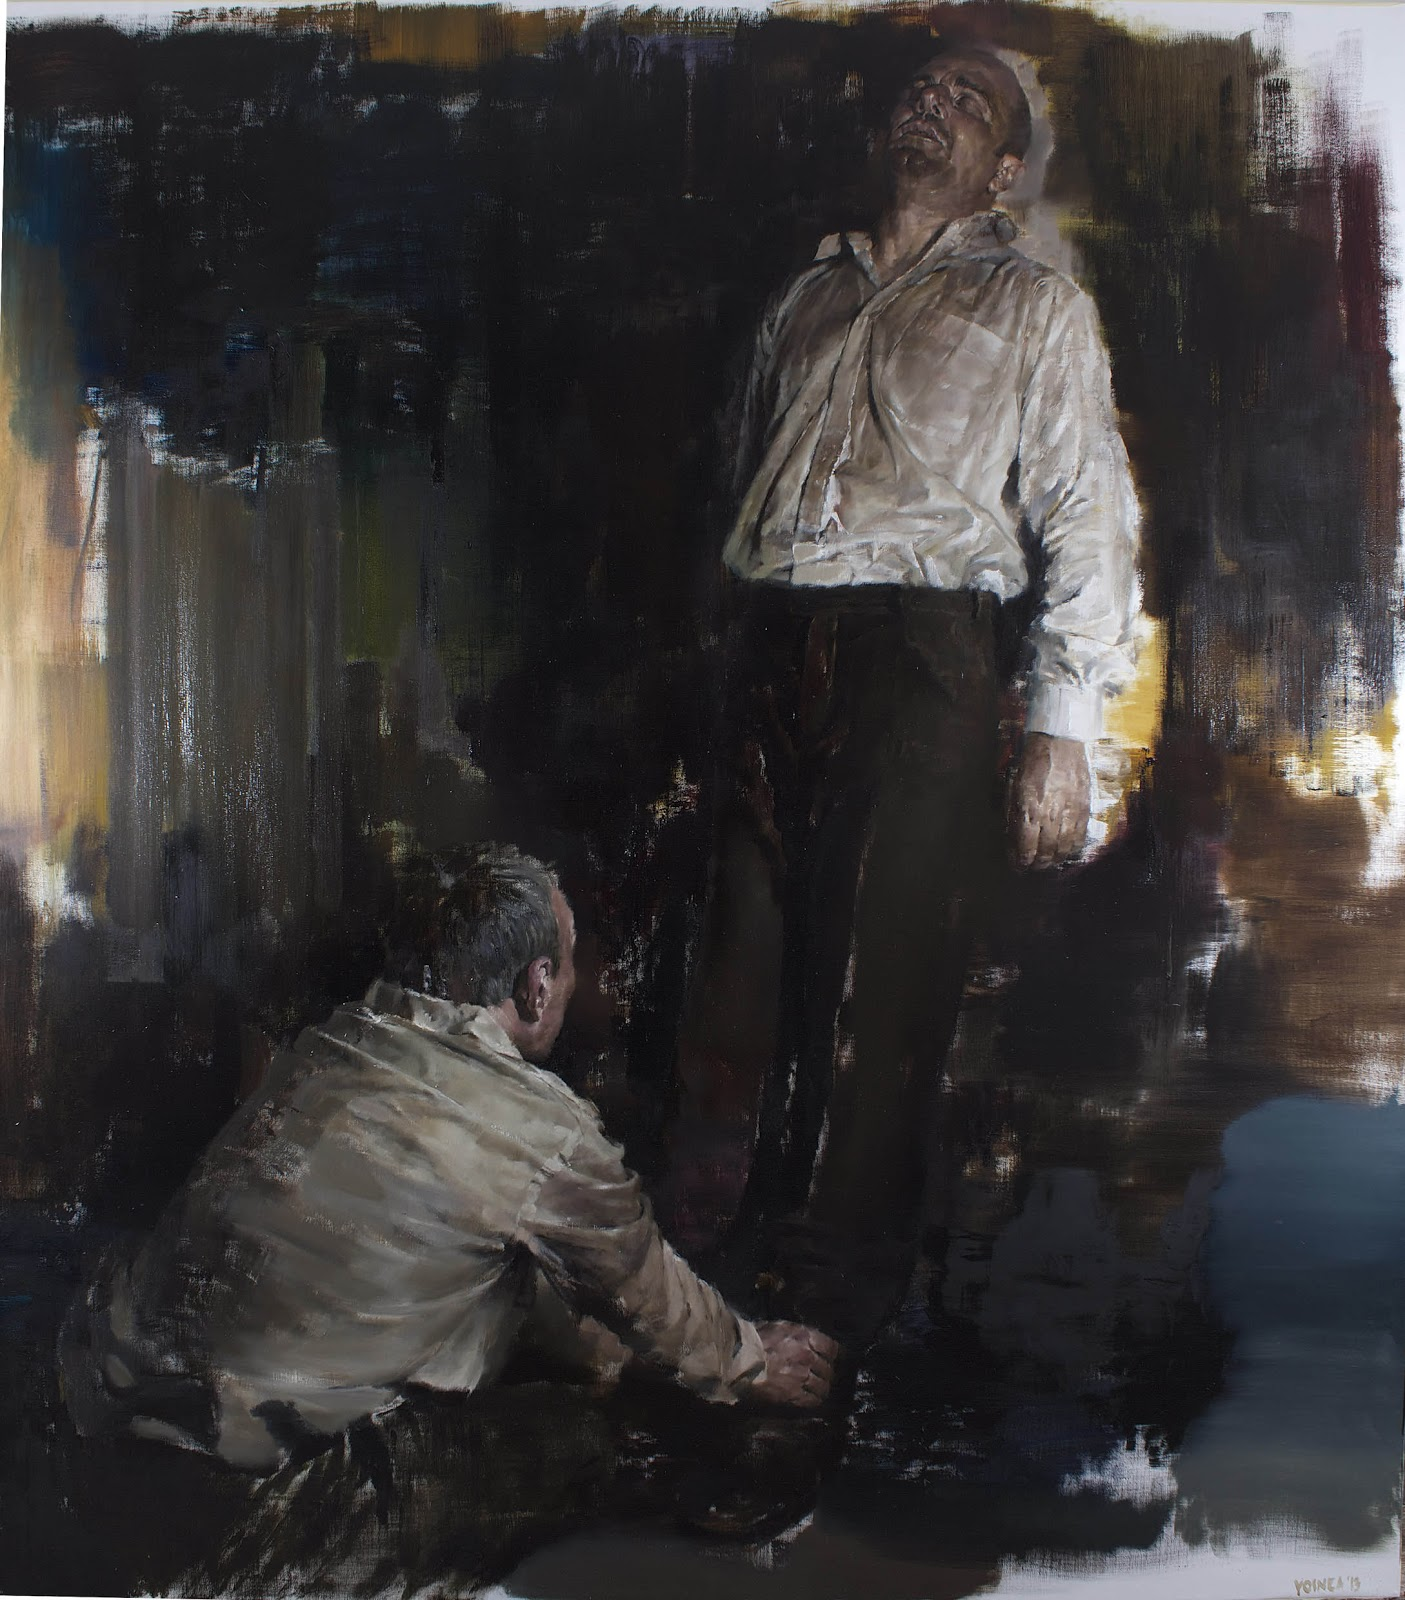 "Dan Voinea ""A Momentary Rise of Reason"" @ Beers.Lambert Contemporary, London: PerformanceIII200X180cm.jpg"